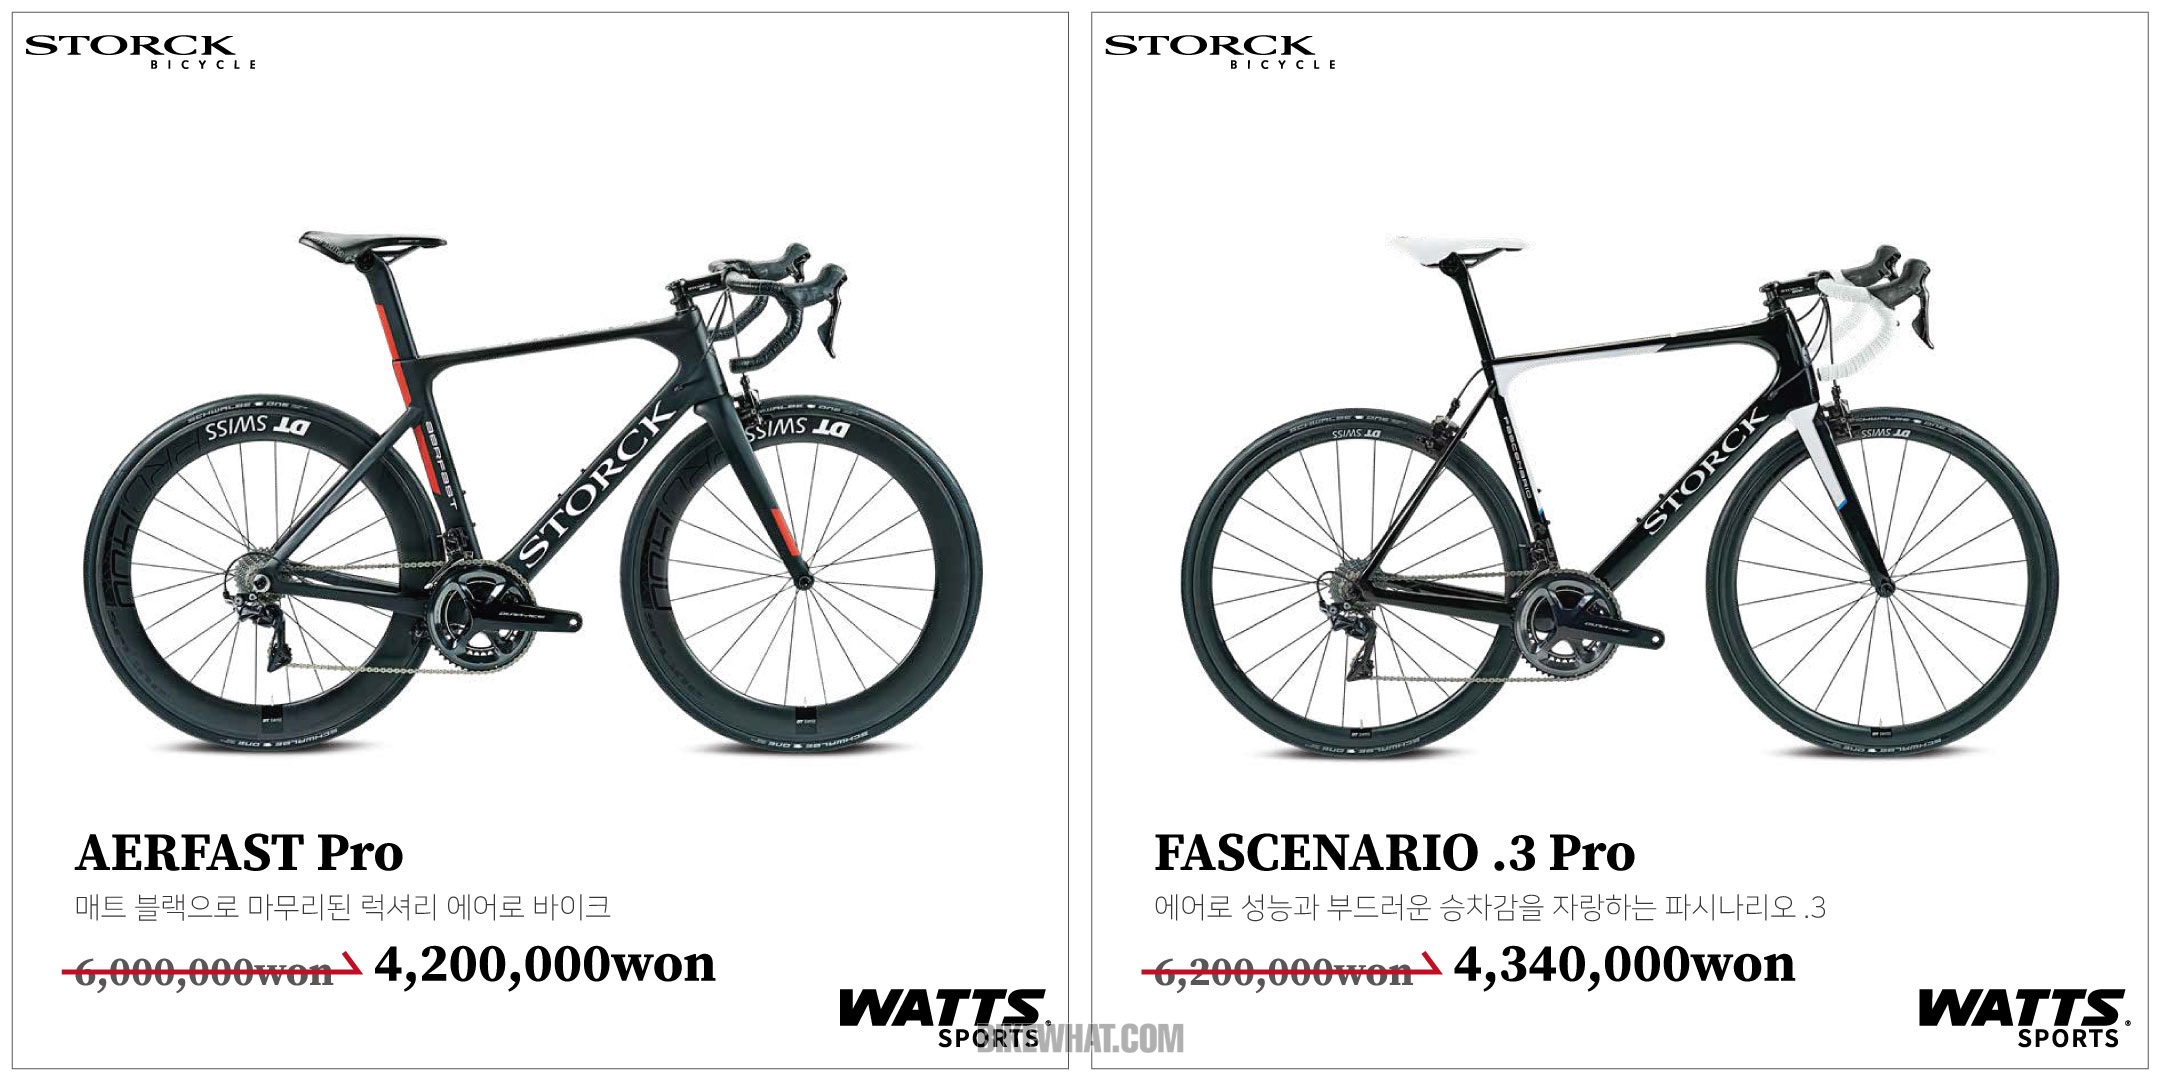 News_storck_sale_1.jpg